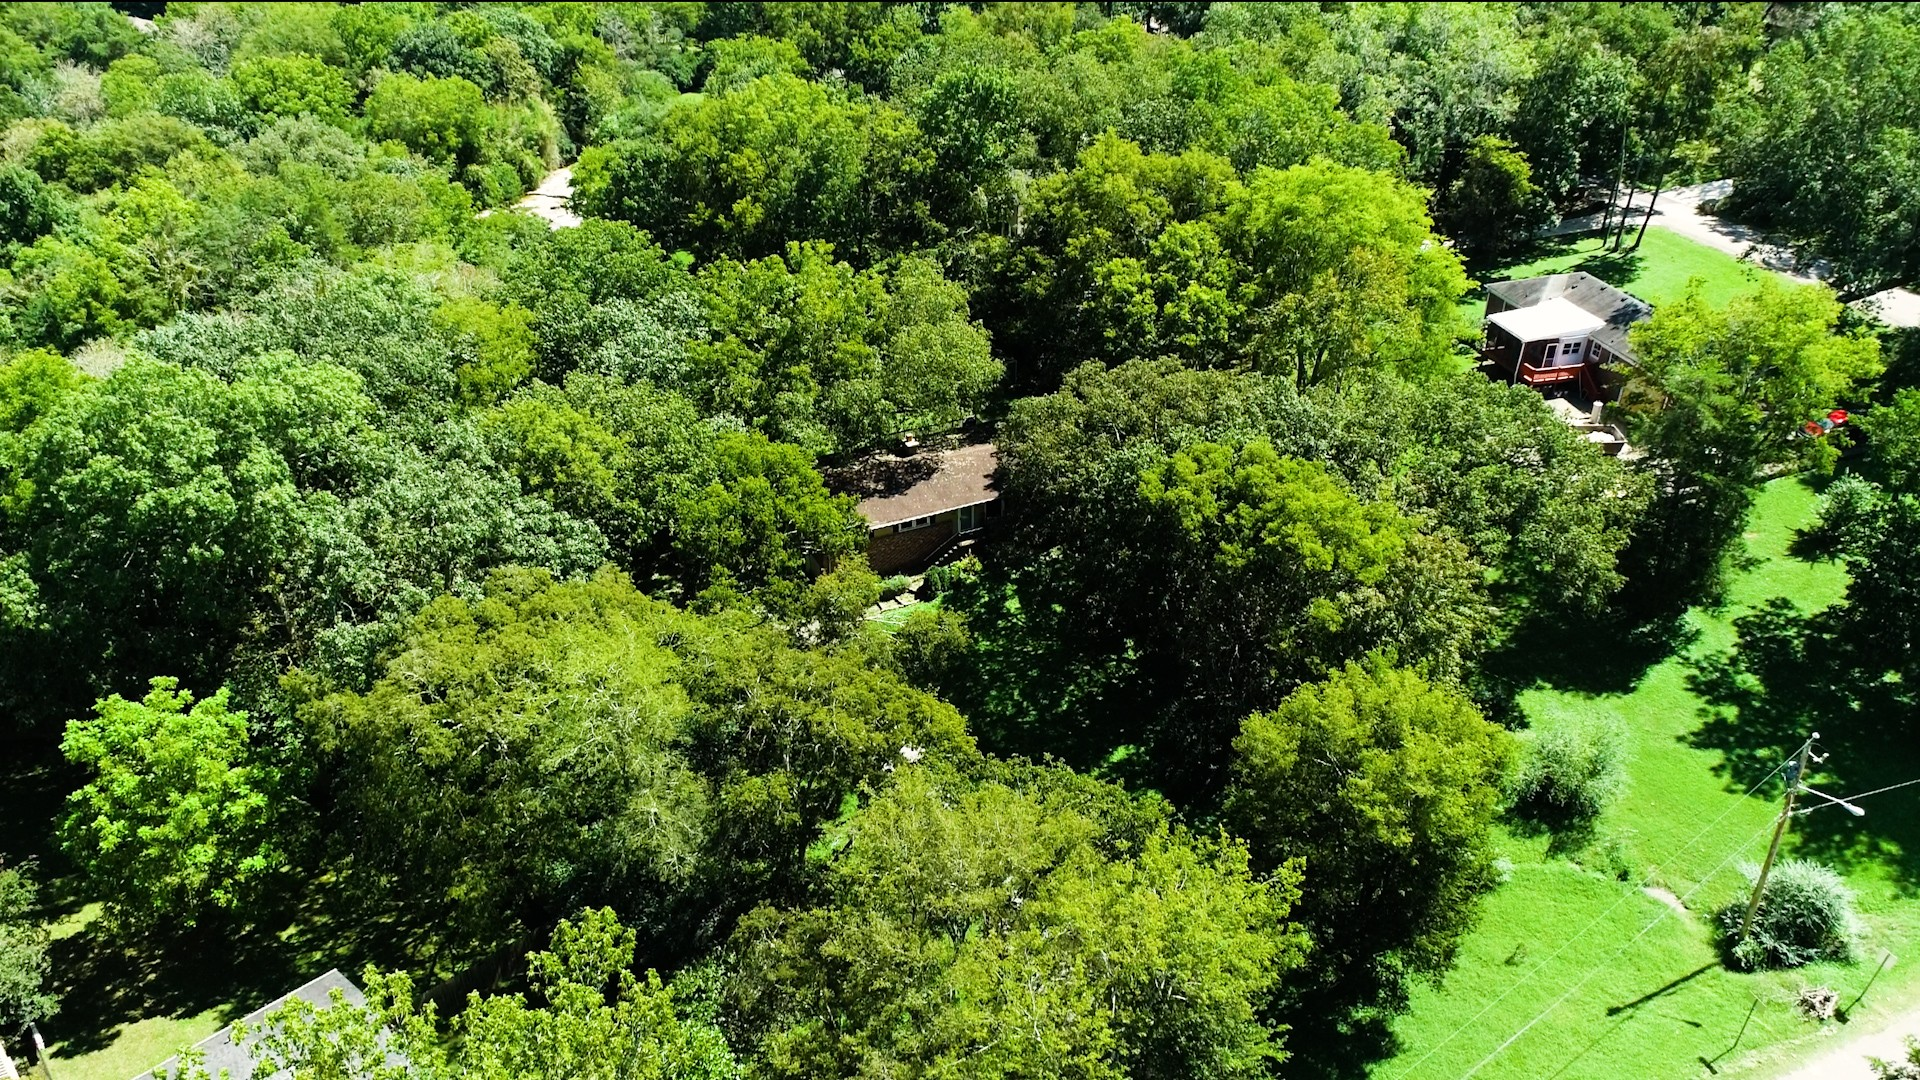 Home is Not To Be Shown - This is an Extremely Rare Opportunity for a Tear Down / New Build on a 1.4 Acre Lot. Build your dream home on this beautiful West Meade lot. this property has a desirable set back. Must check out video!!